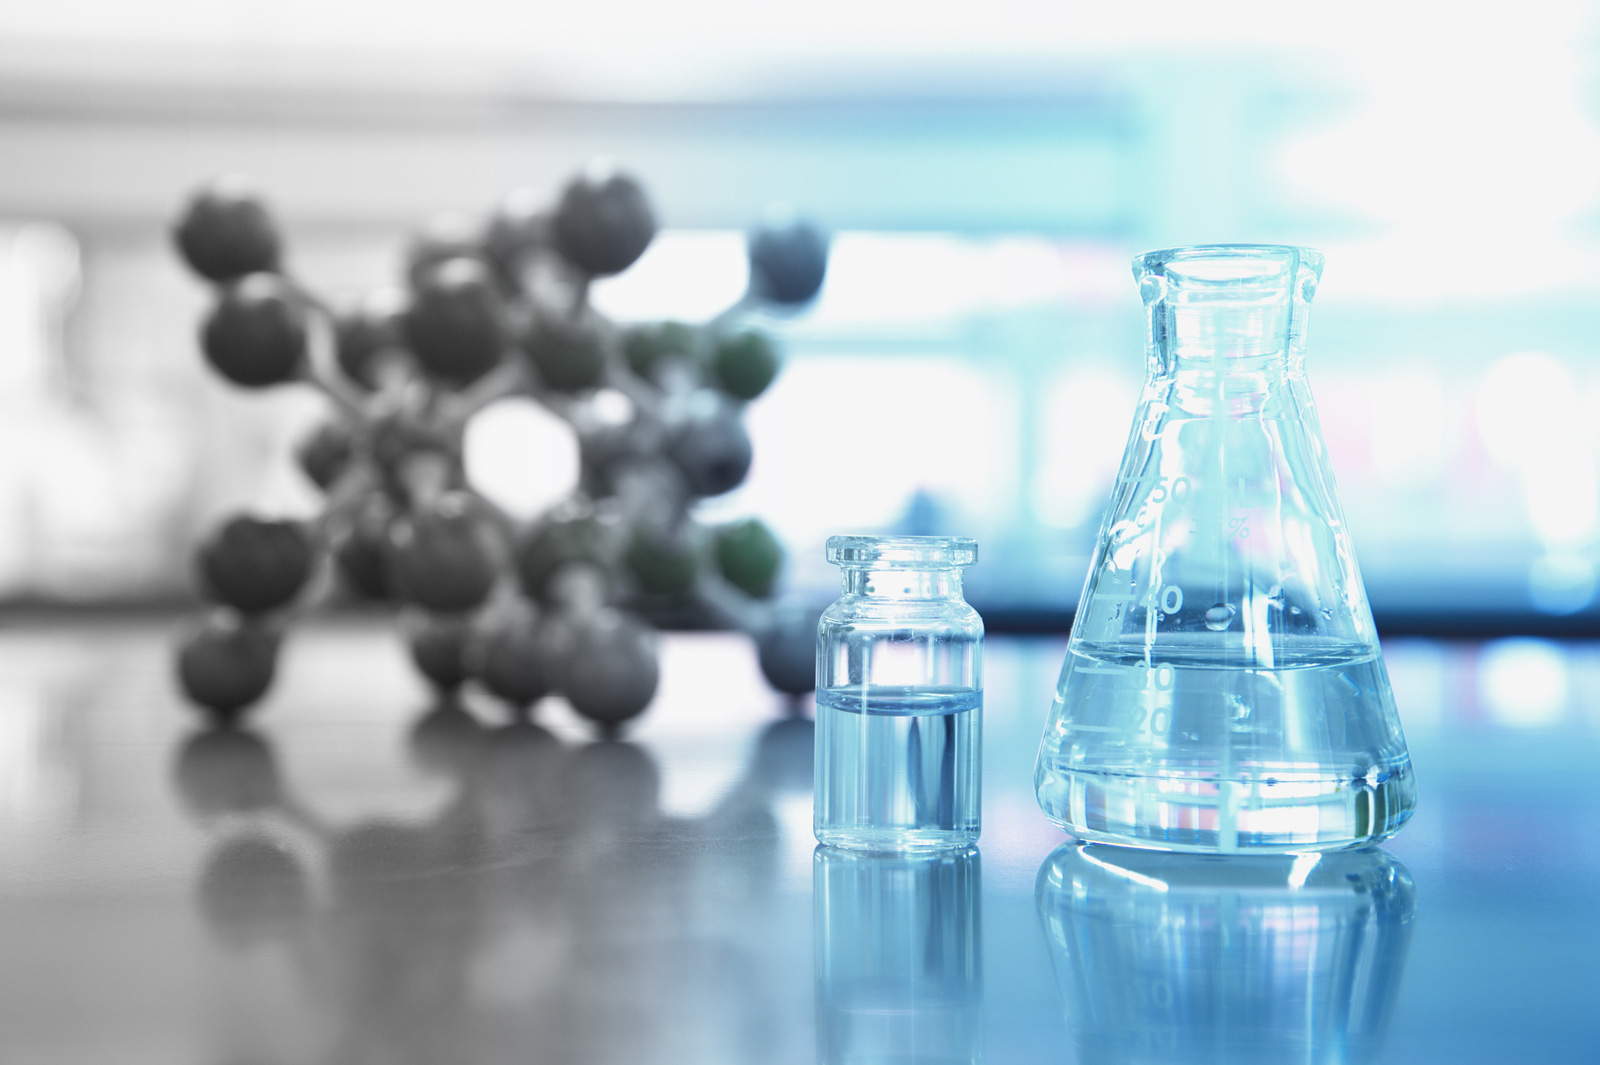 Polyurethane (PU) Dispersions (Aqueous and Solvent)  Market Insights, Trends & Growth Outlook